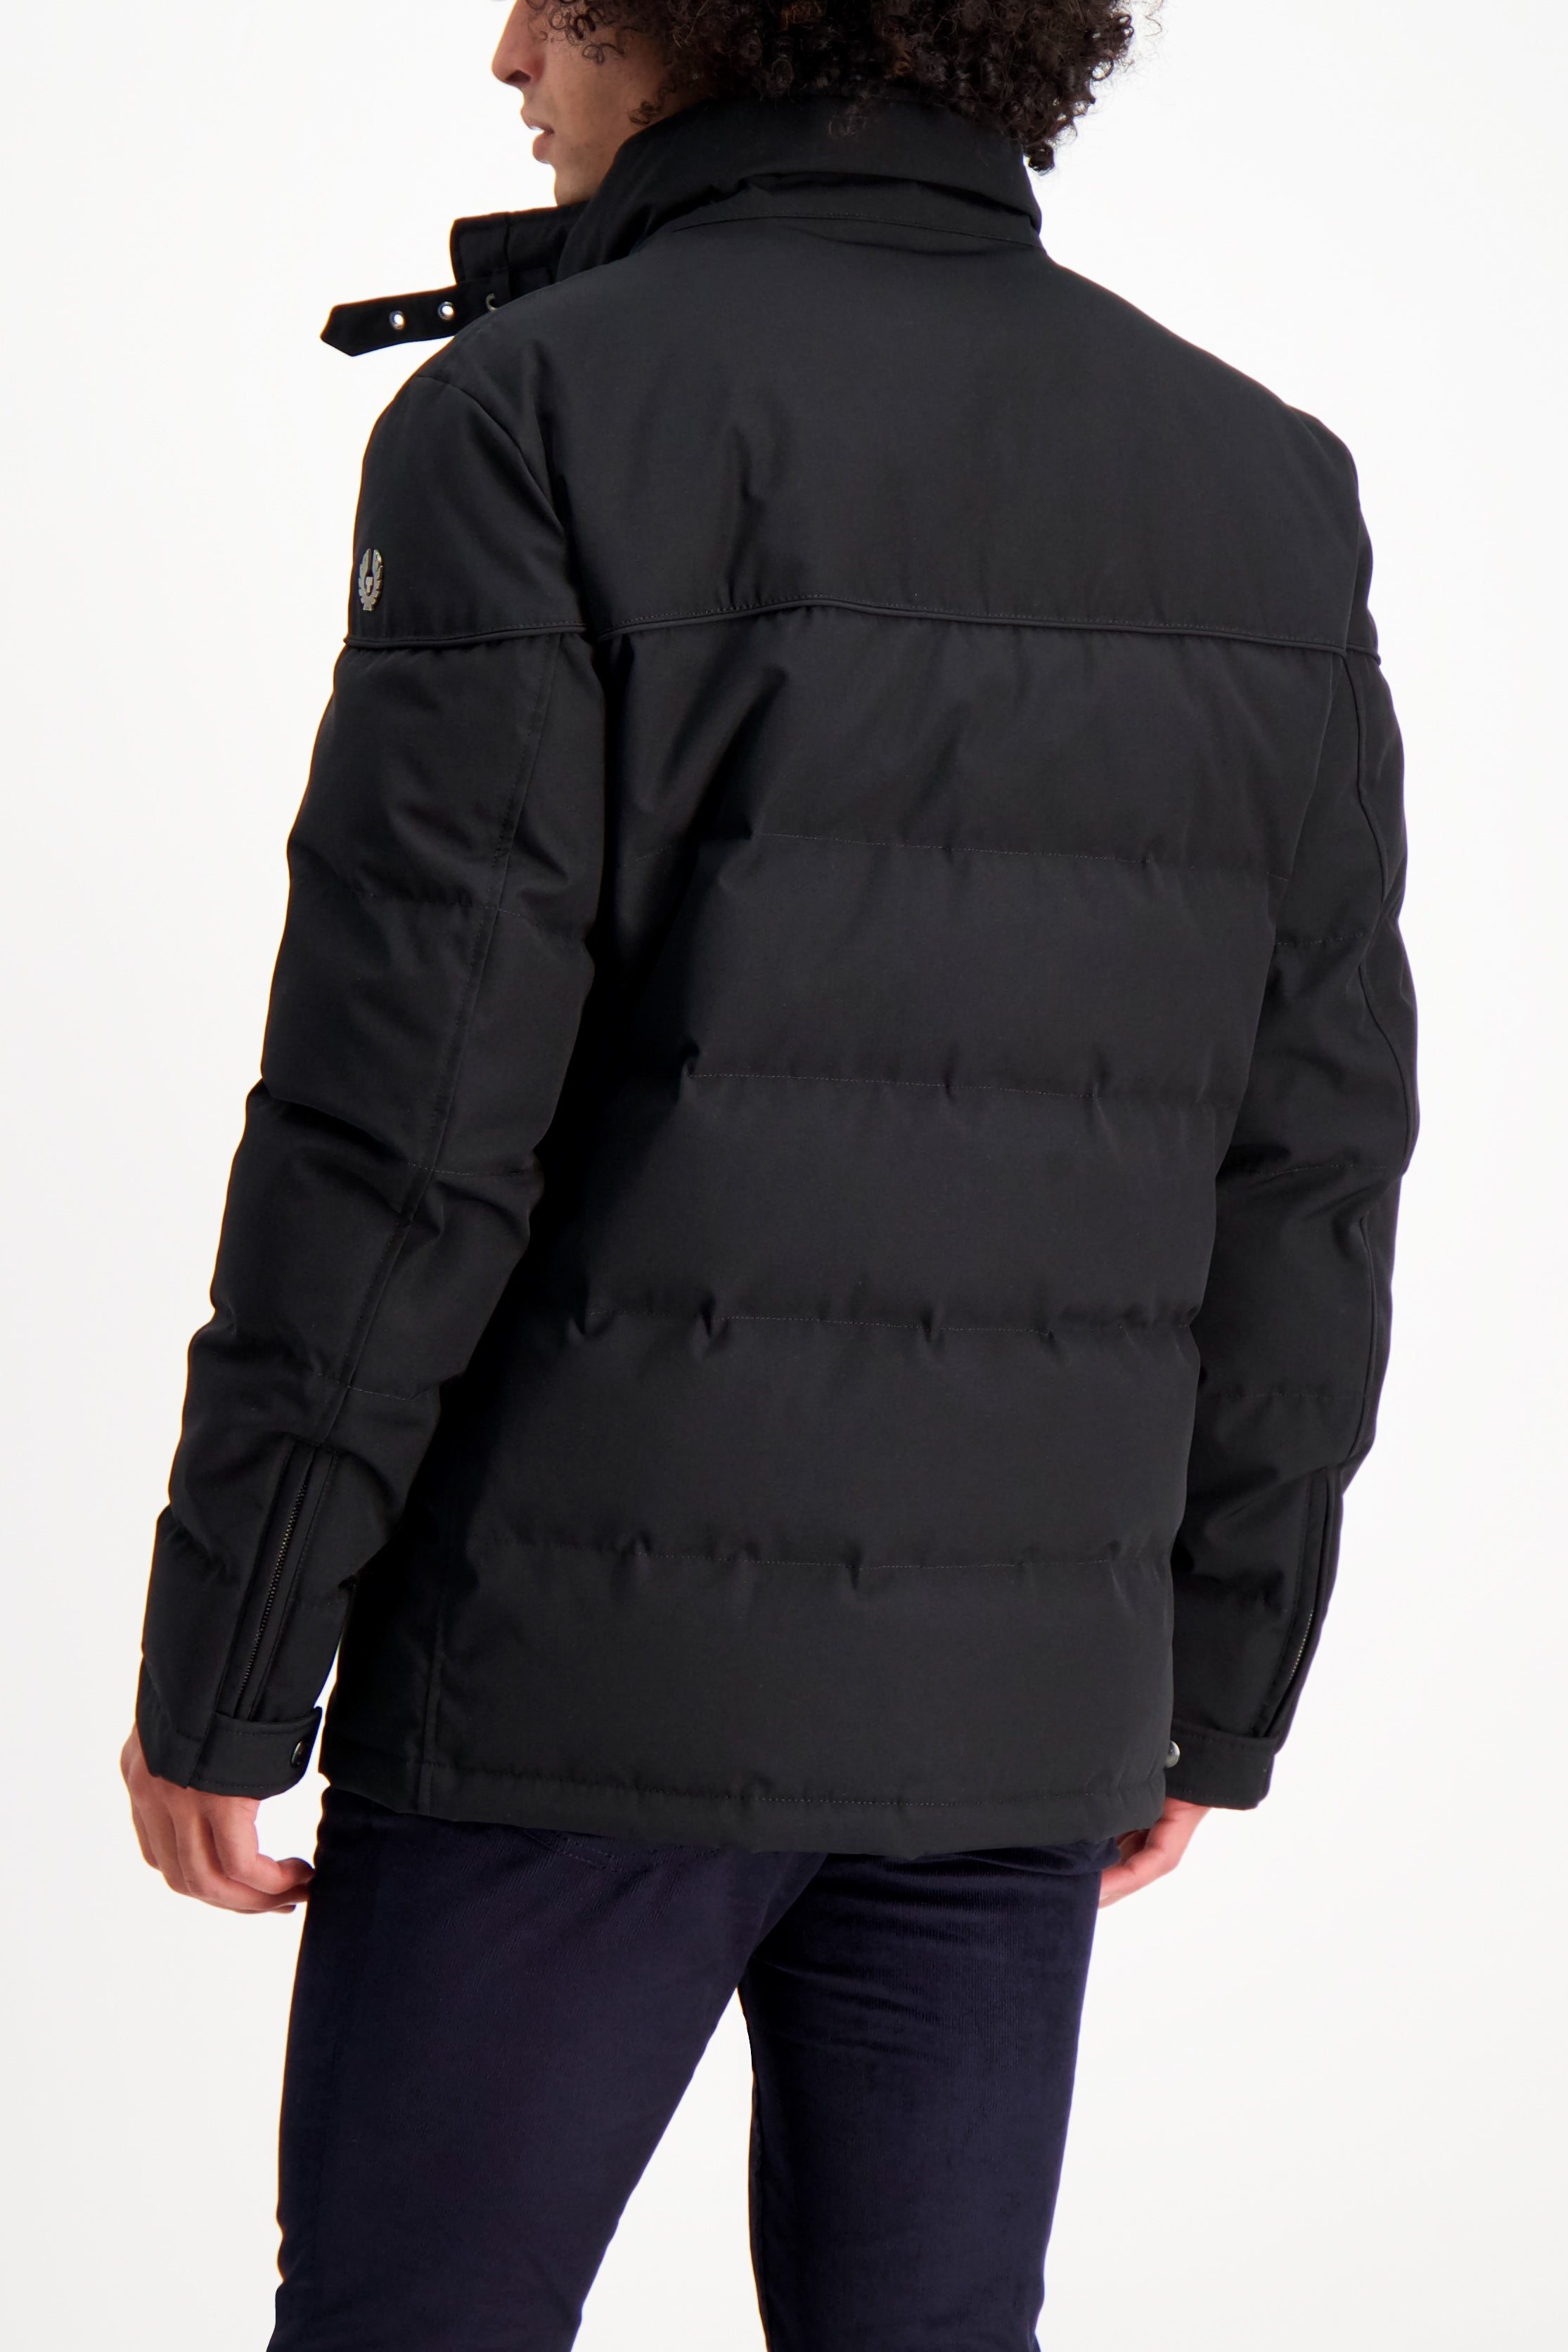 Back Crop Image Of Model Wearing Belstaff Men's Cotton Twill Mountain Jacket